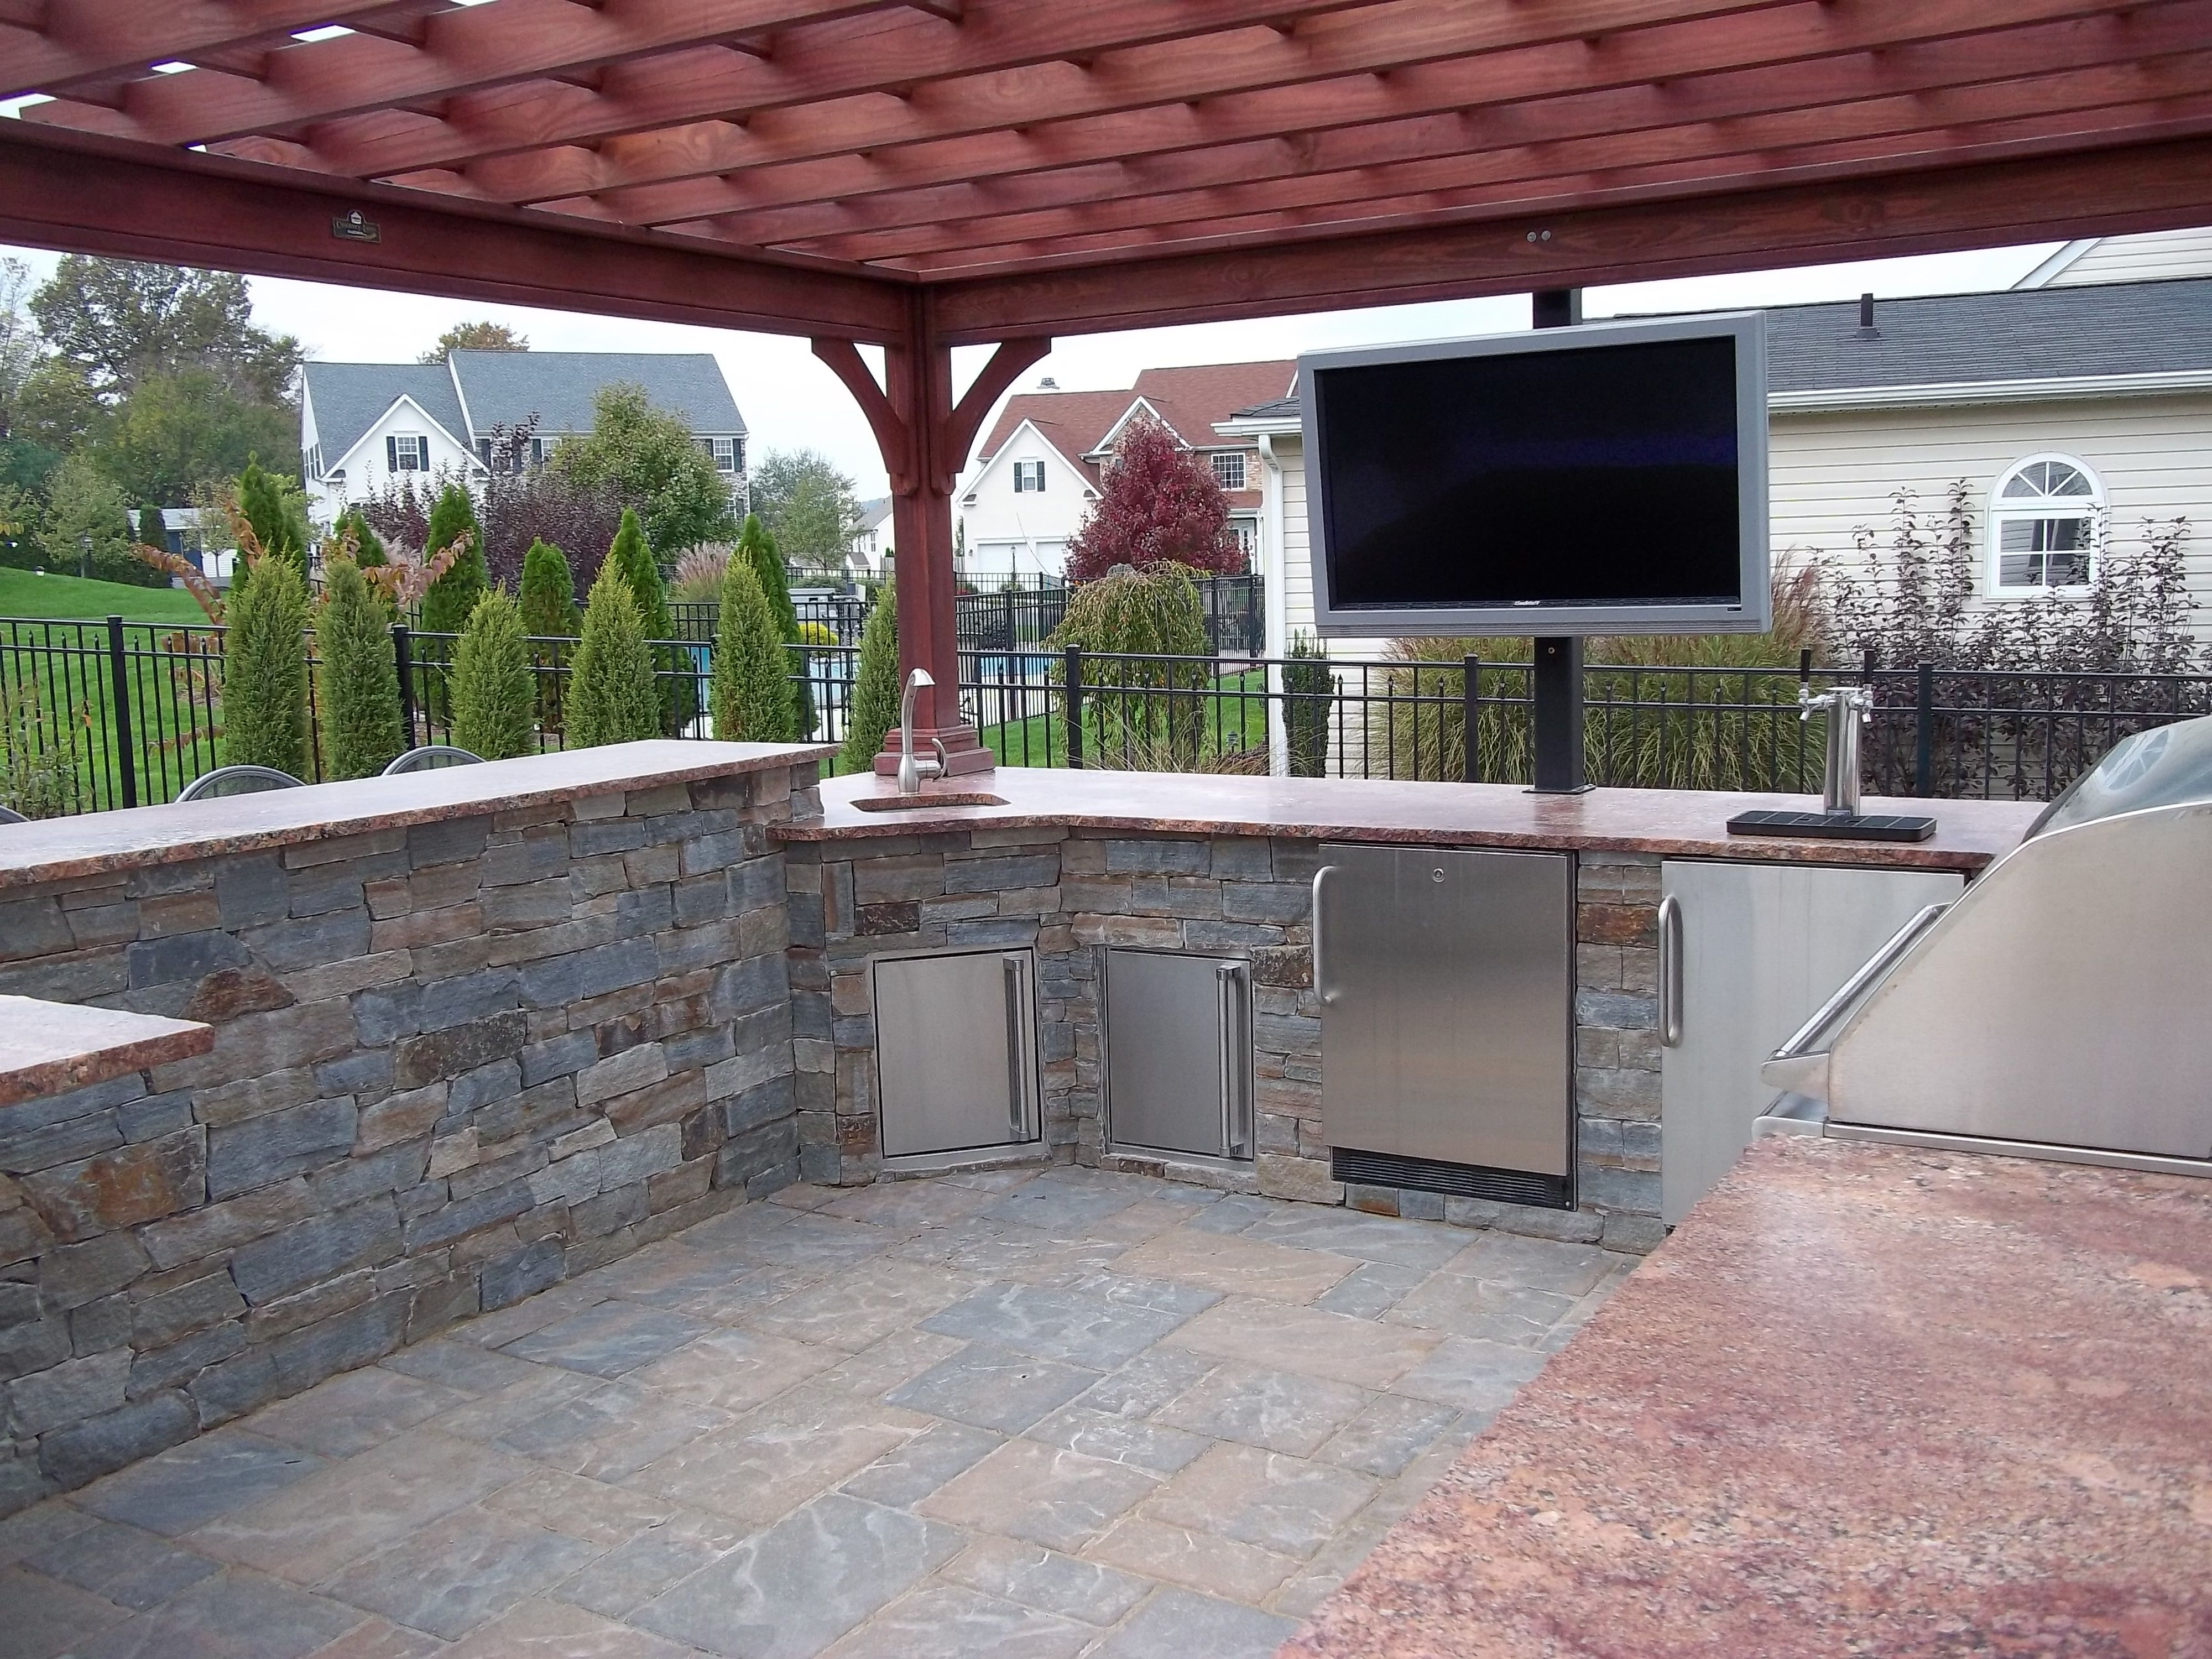 Outdoor Kitchen Grill Fridge Beer Tap And Outdoor Tv Outdoor Kitchen Grill Outdoor Kitchen Outdoor